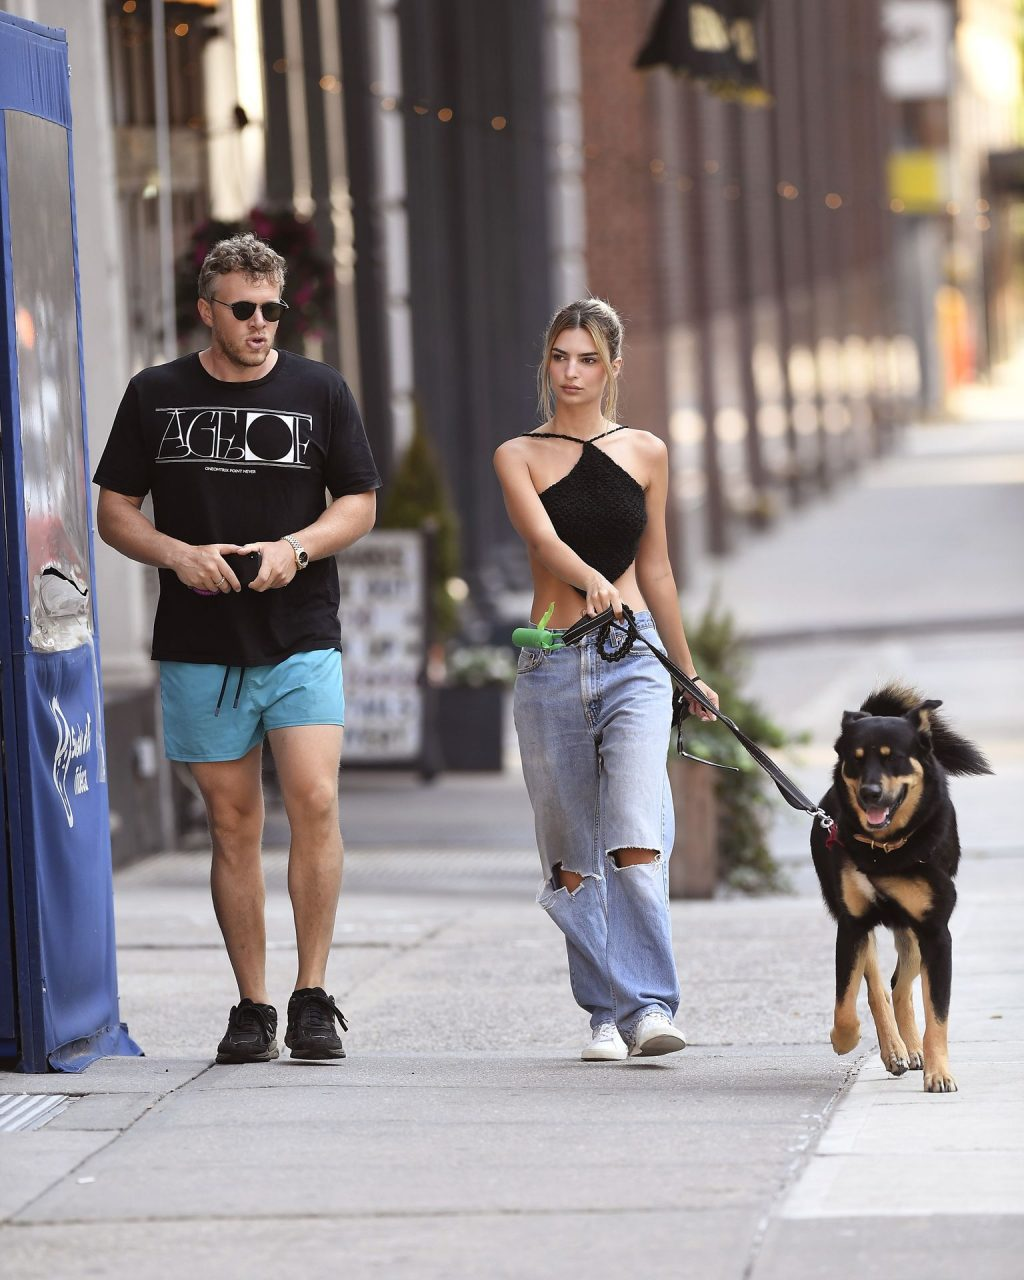 Emily Ratajkowski And Her Husband Take A Morning Walk In NYC (41 Photos)